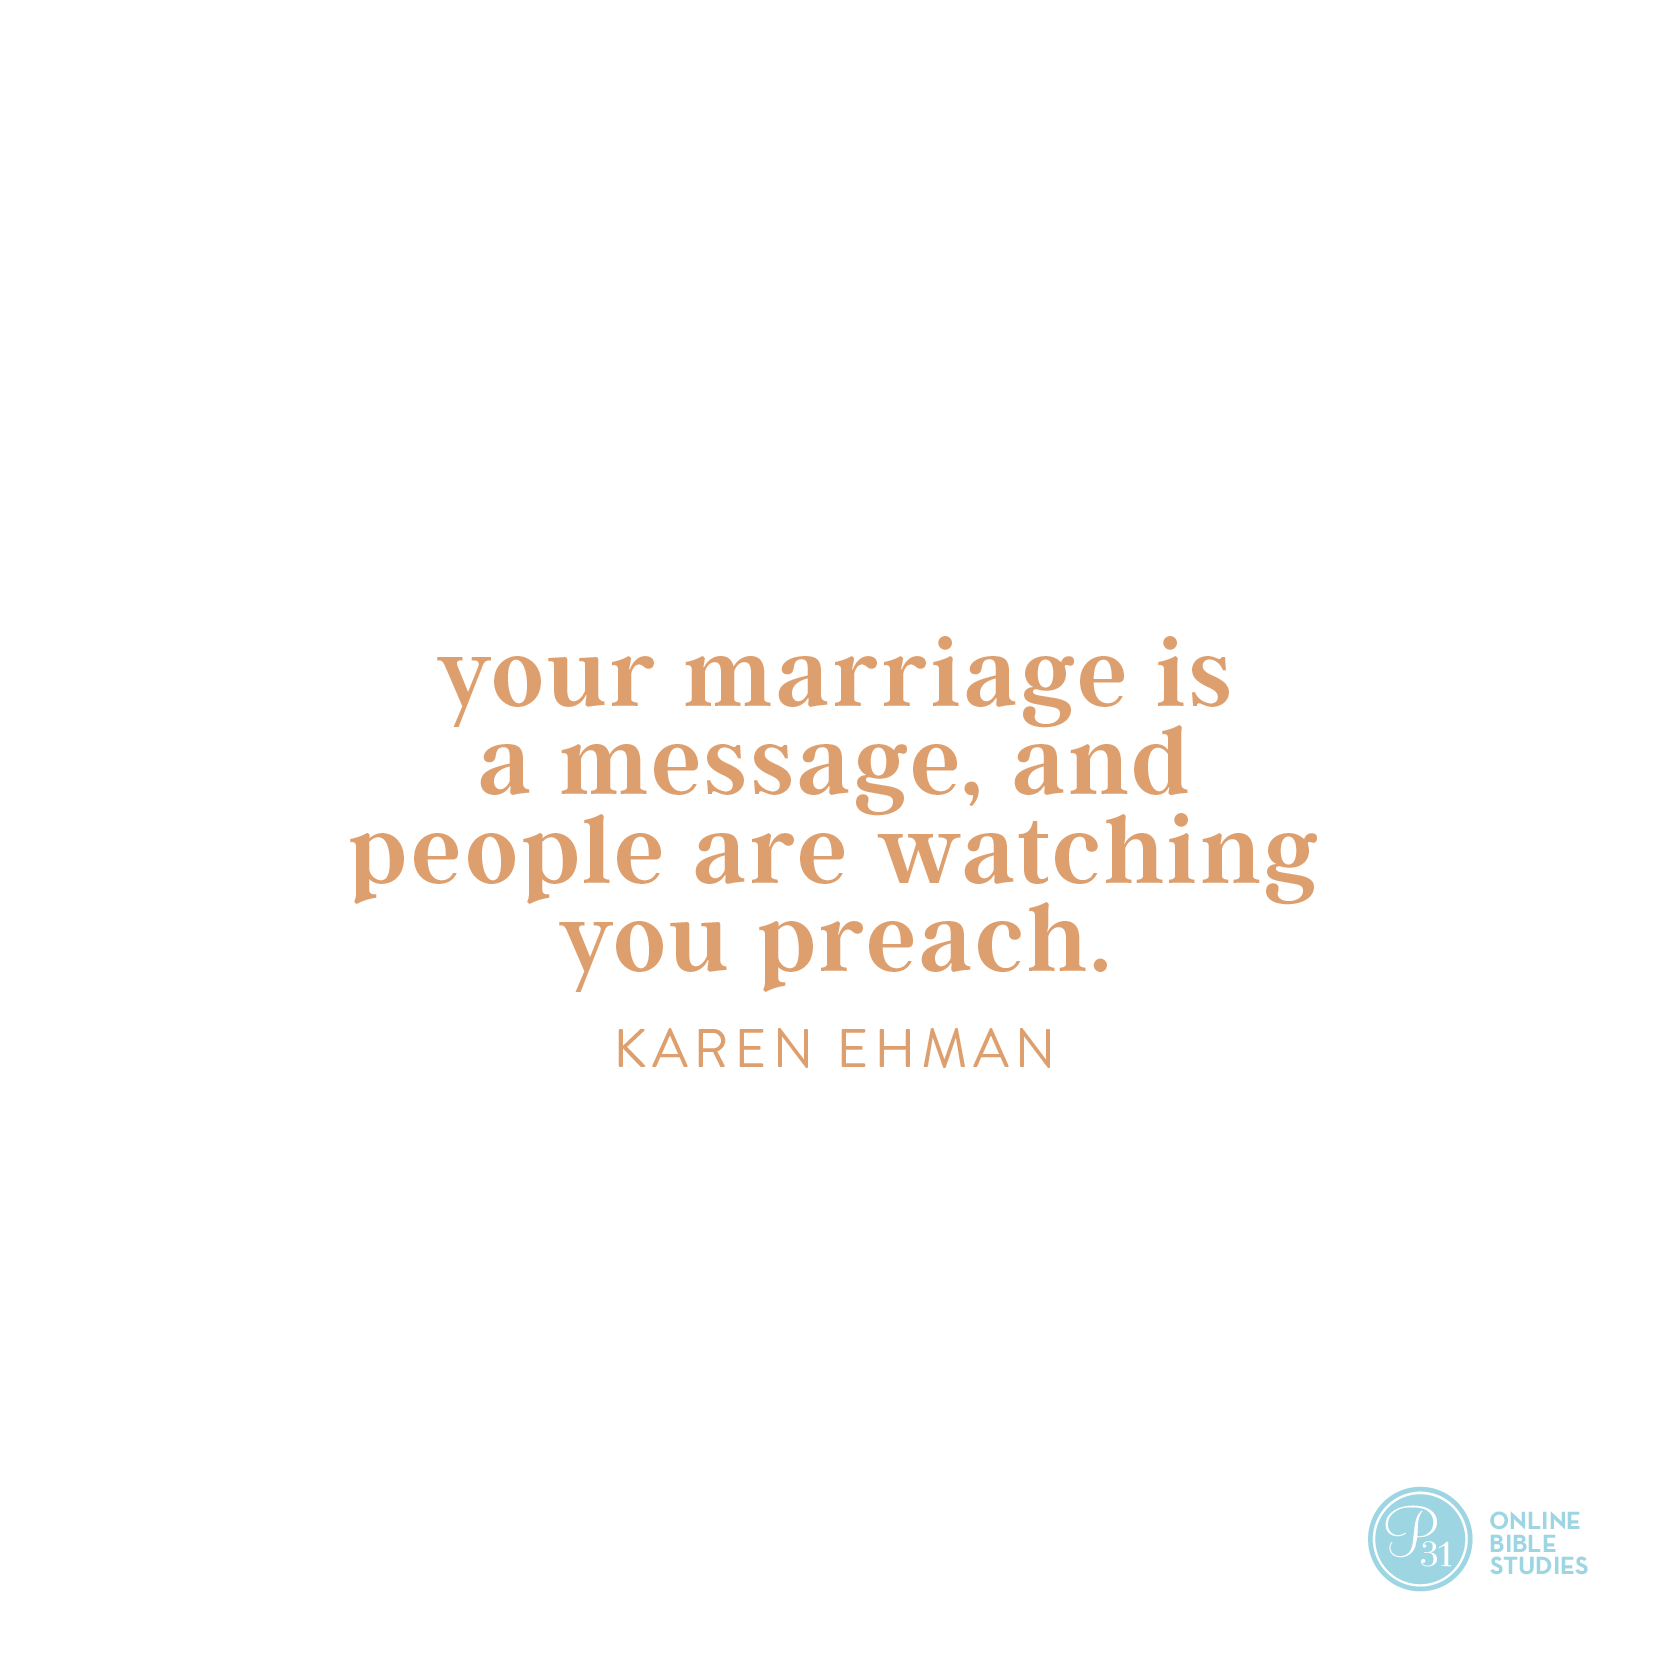 """""""Your marriage is a message, and people are watching you preach."""" - Karen Ehman  #KeepShowingUpBook   Proverbs 31 Online Bible Studies Week 1 #P31OBS"""